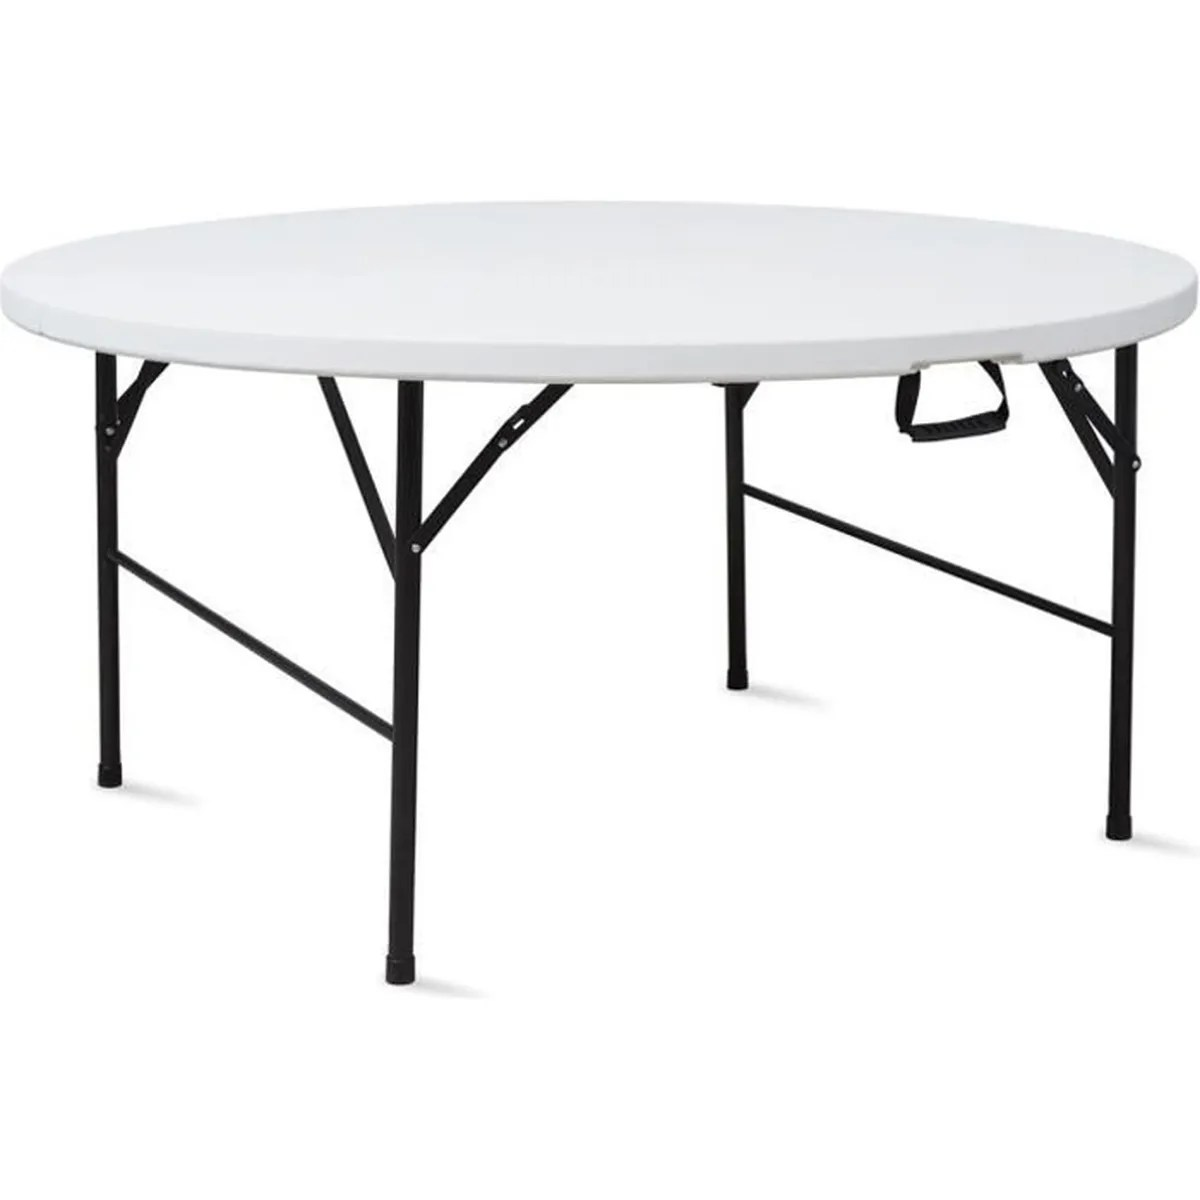 Table Pliante Exterieur Table Pliante Ronde 180 Cm Portable Achat Vente Table De